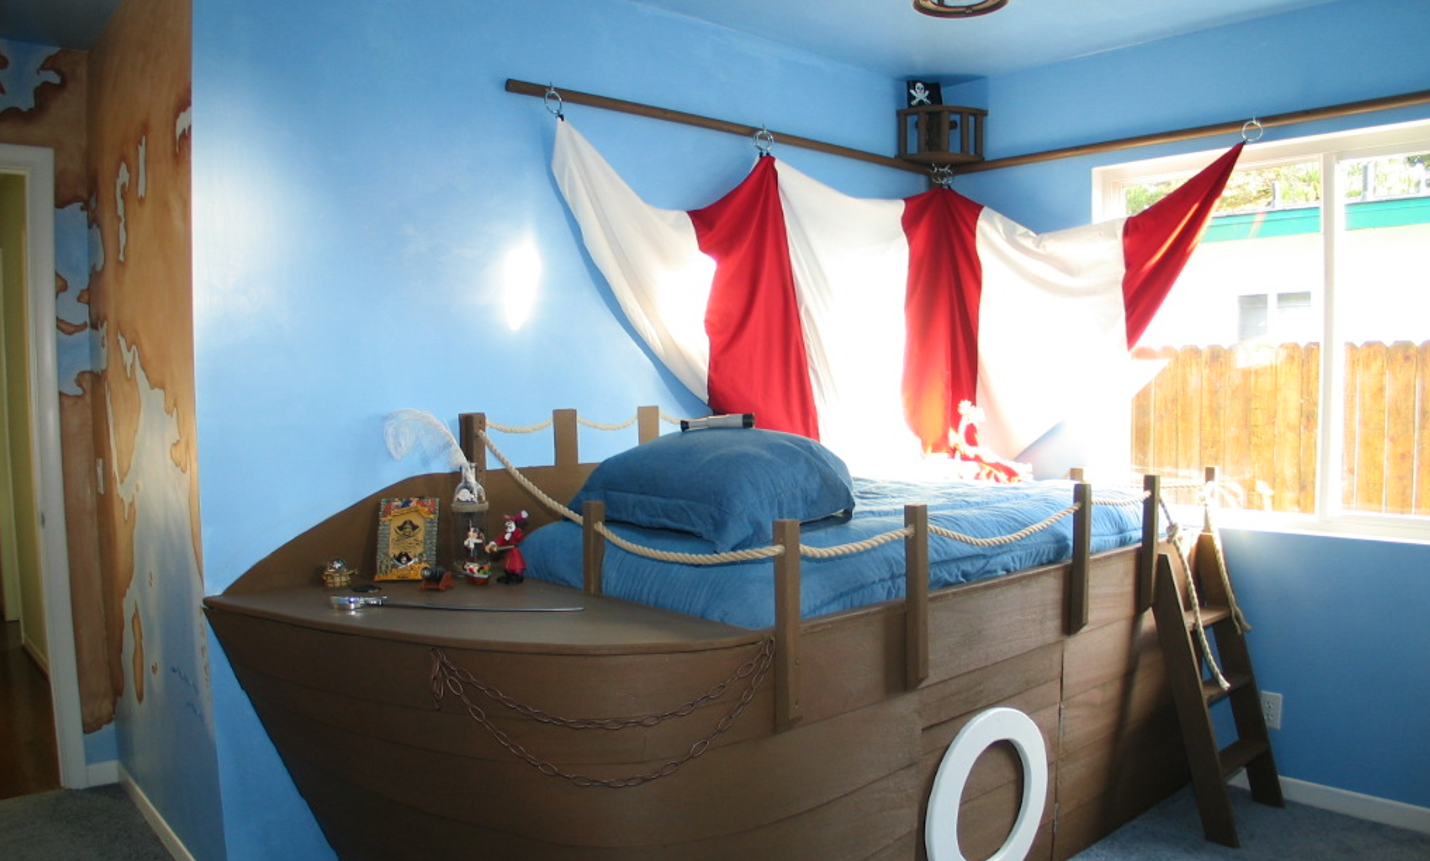 Childrens-room-with-pirate-theme